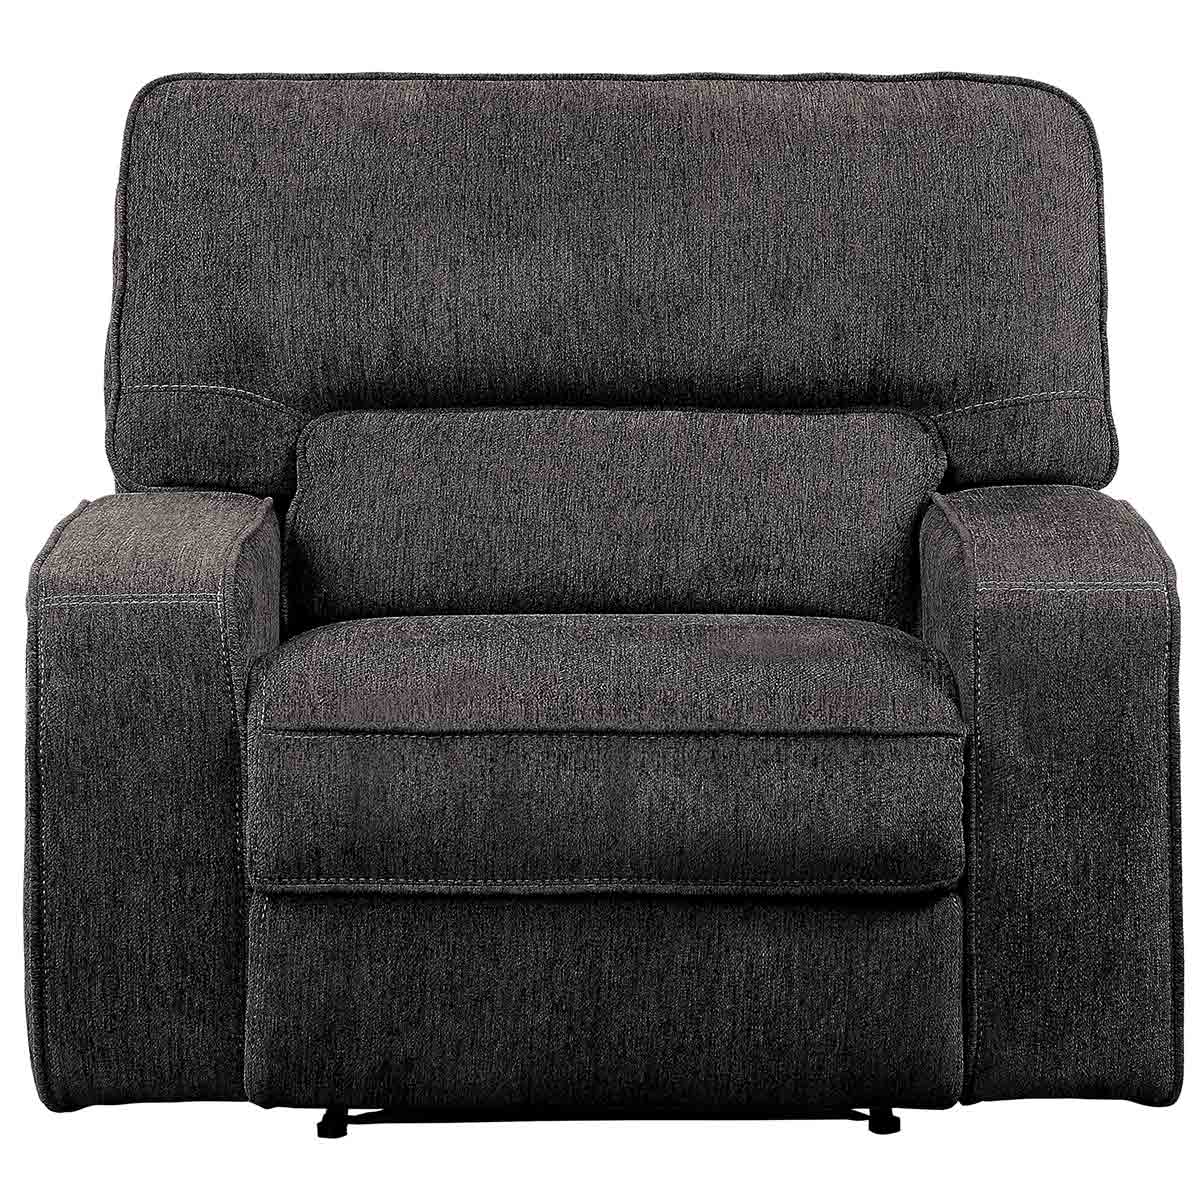 Homelegance Borneo Power Reclining Sofa Set - Chocolate